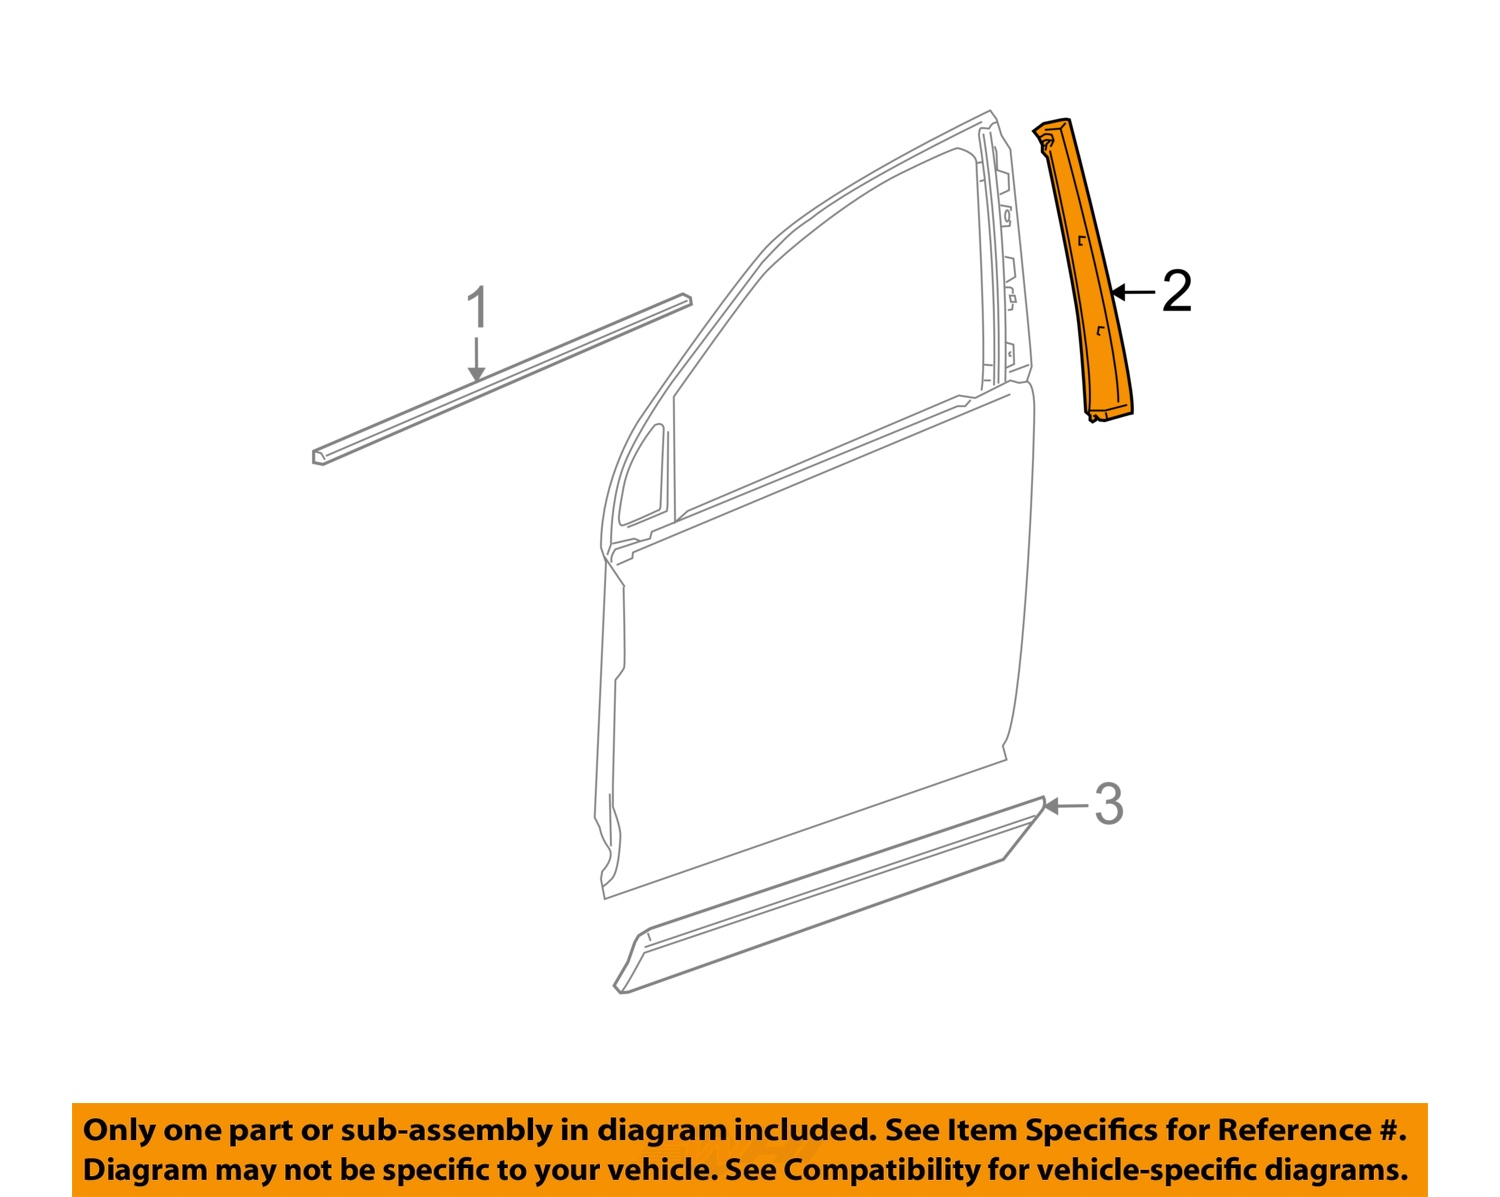 Saturn Gm Oem 02 07 Vue Front Door Applique Window Trim